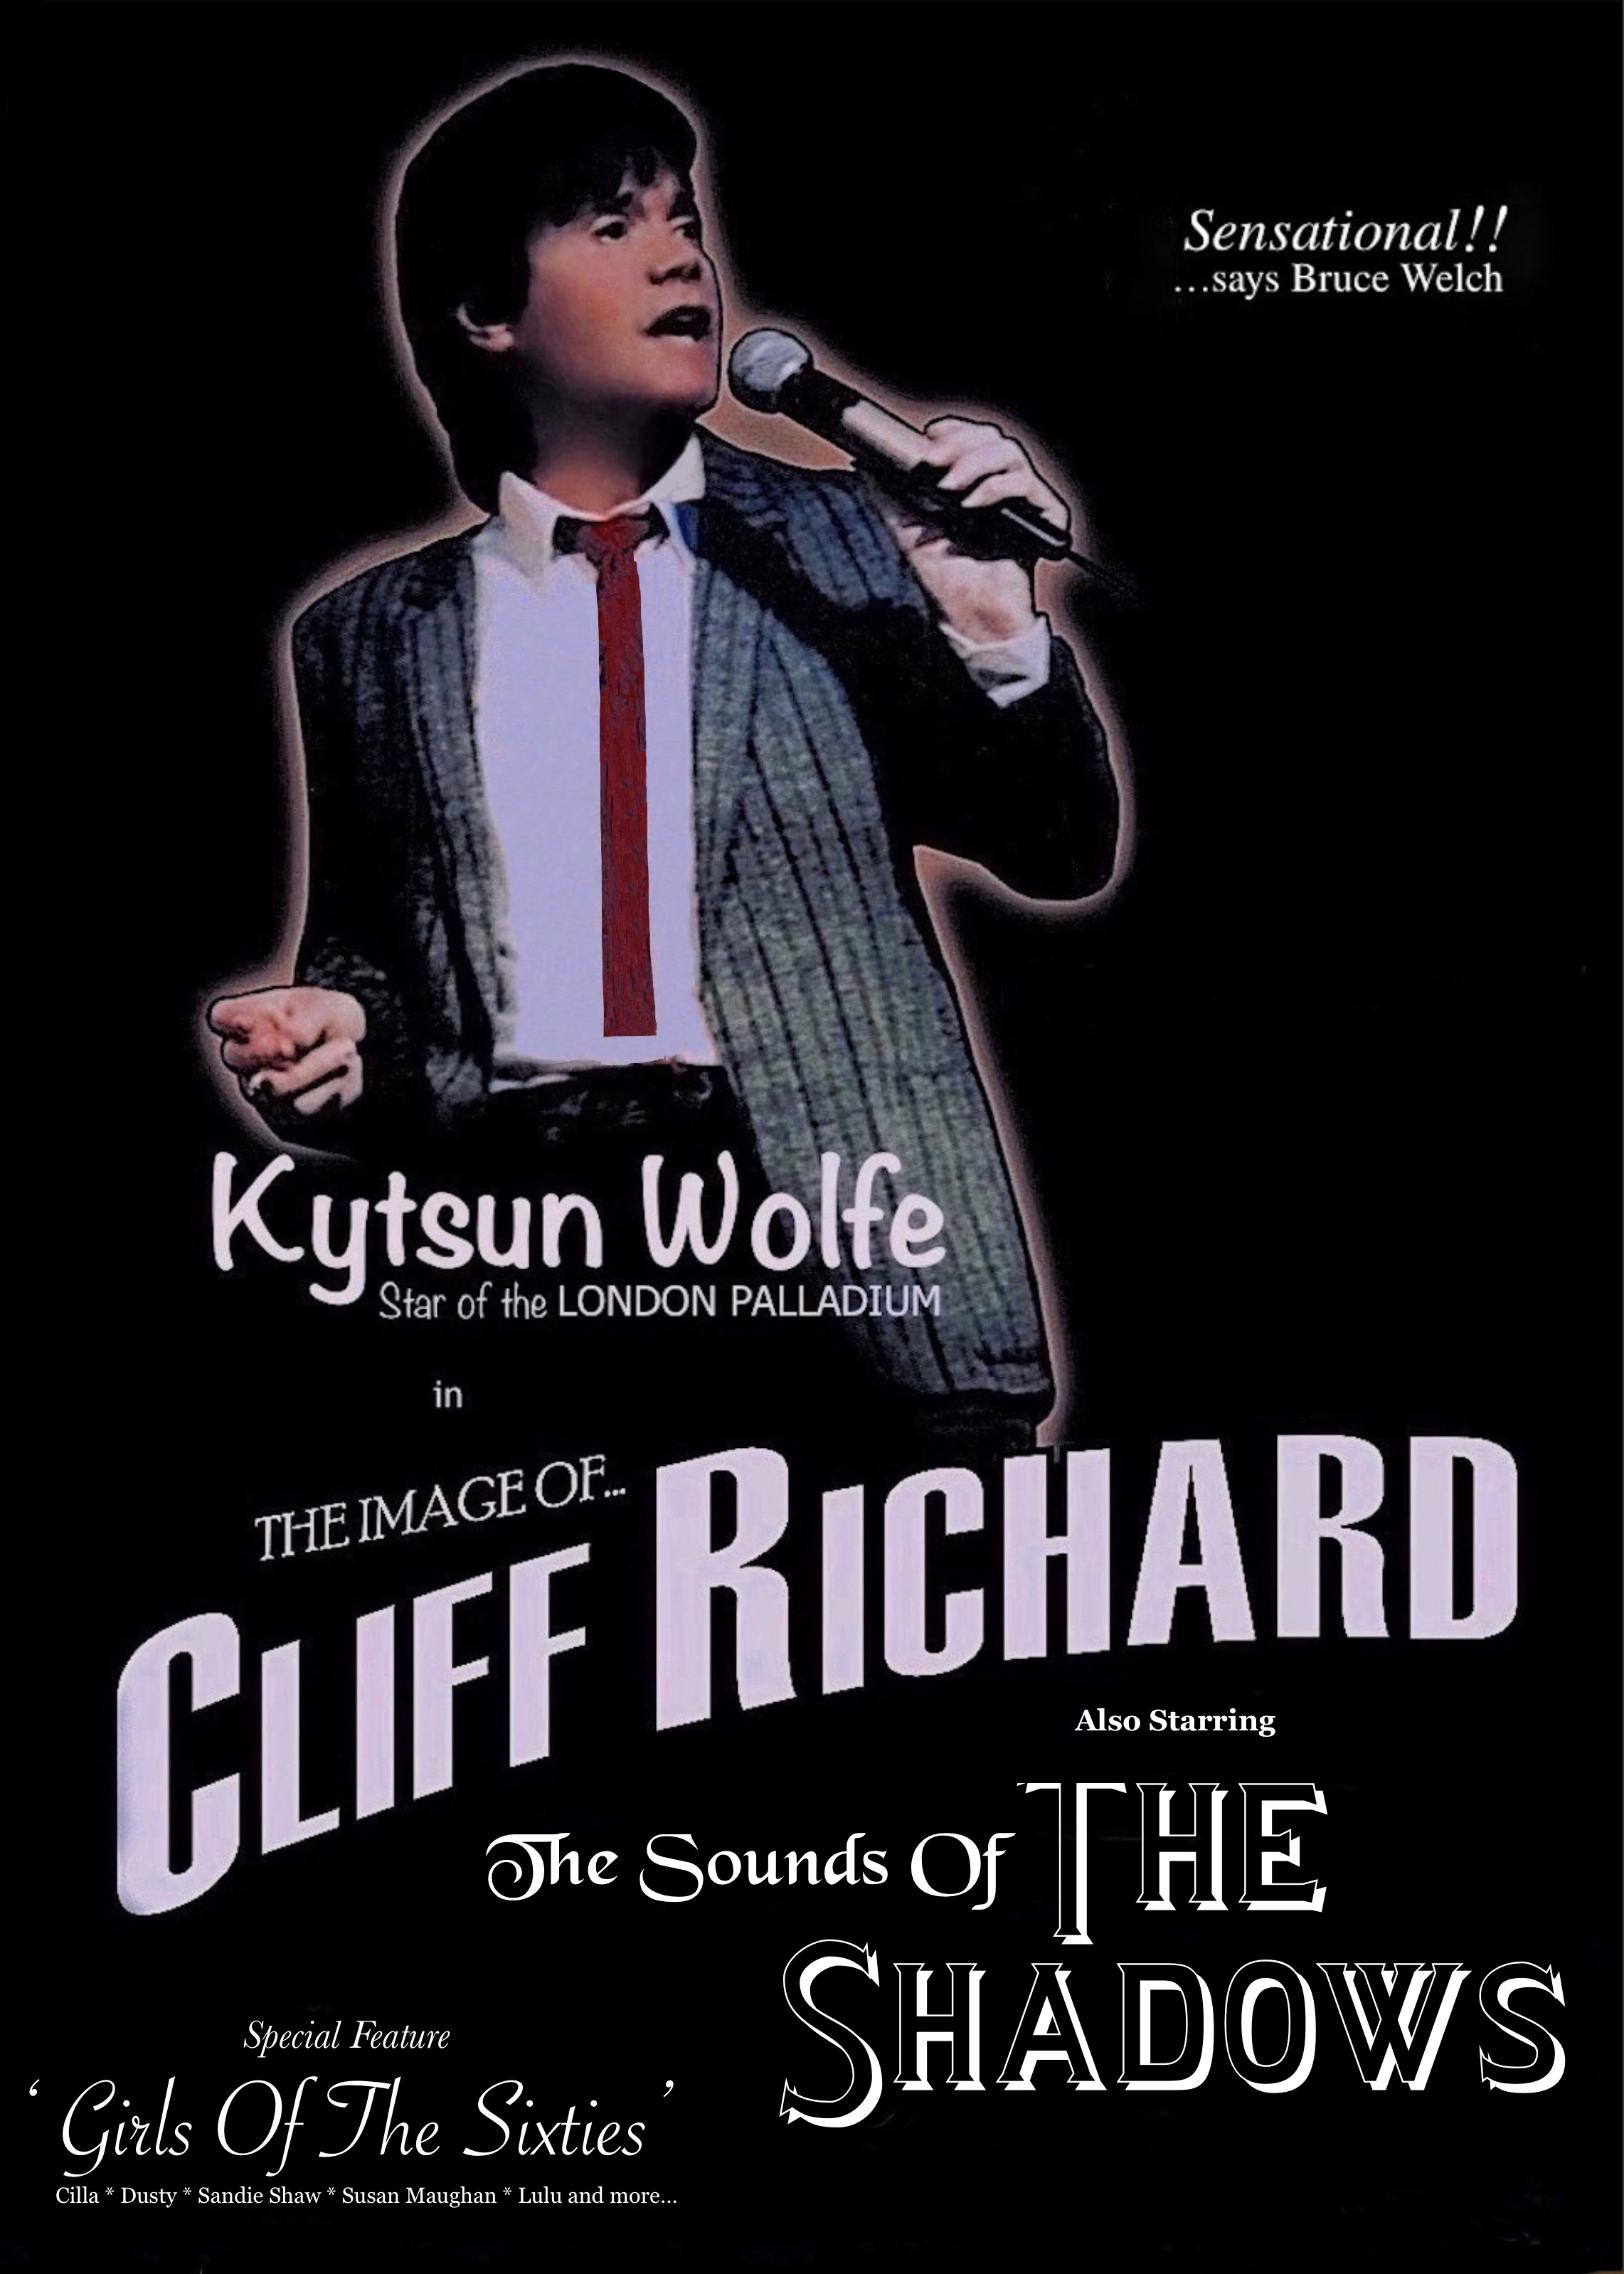 The Image of Cliff & The Shadows - Starring Kytsun Wolfe